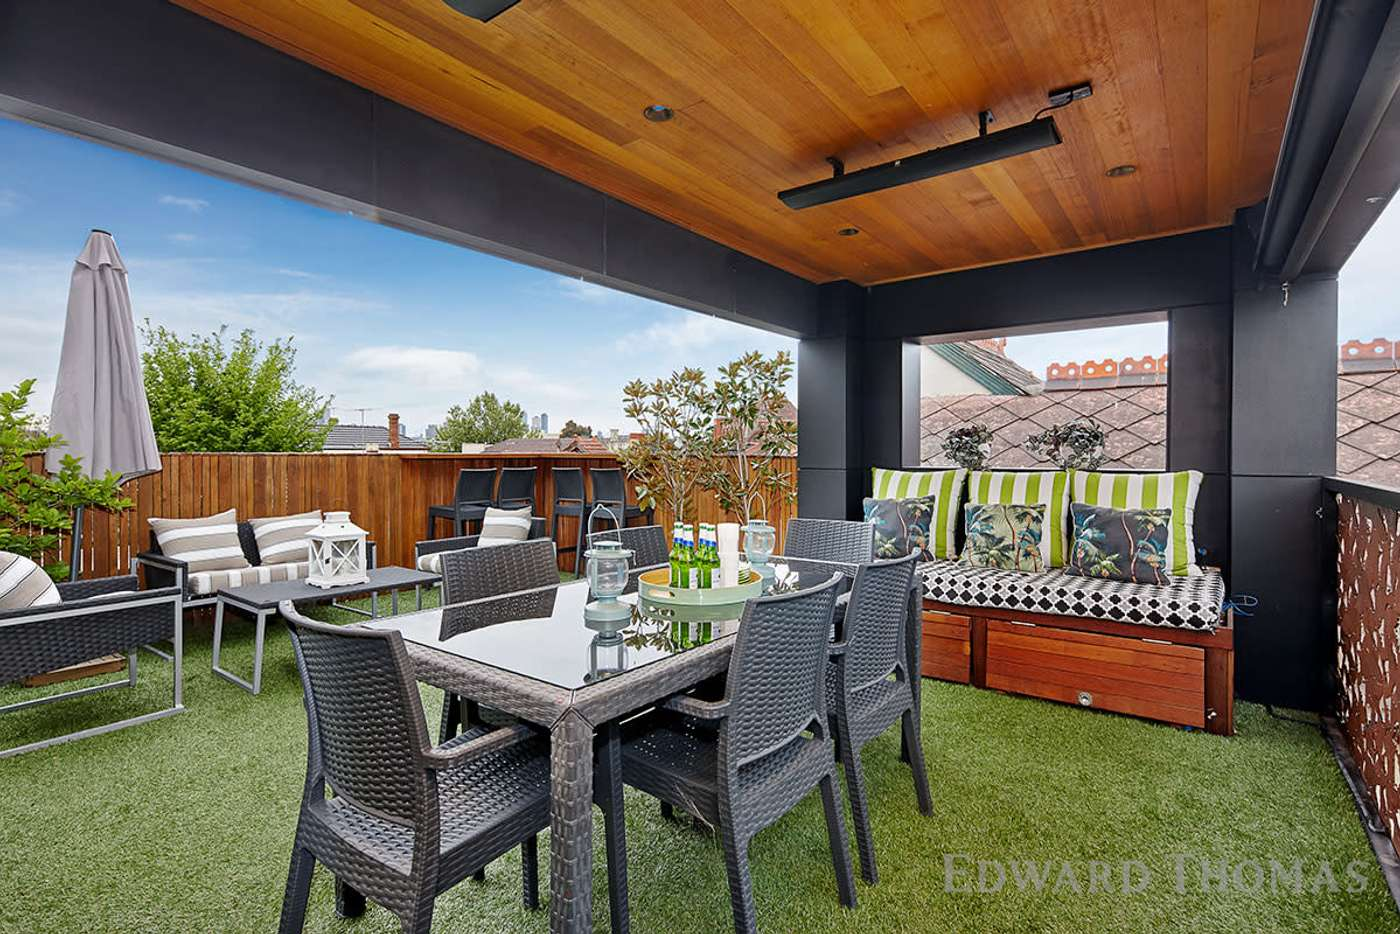 Fifth view of Homely house listing, 548 Macaulay Road, Kensington VIC 3031